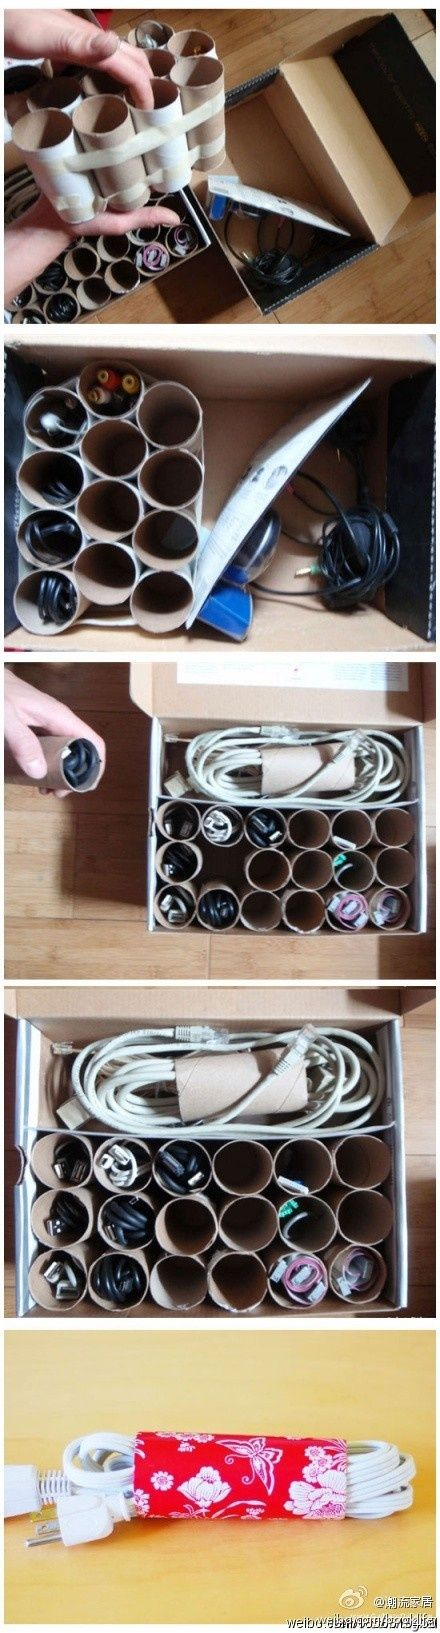 """love it – shows you dont need expensive """"organising things"""" to get in order. Use toilet paper rolls to organise  power cords, cables,etc."""